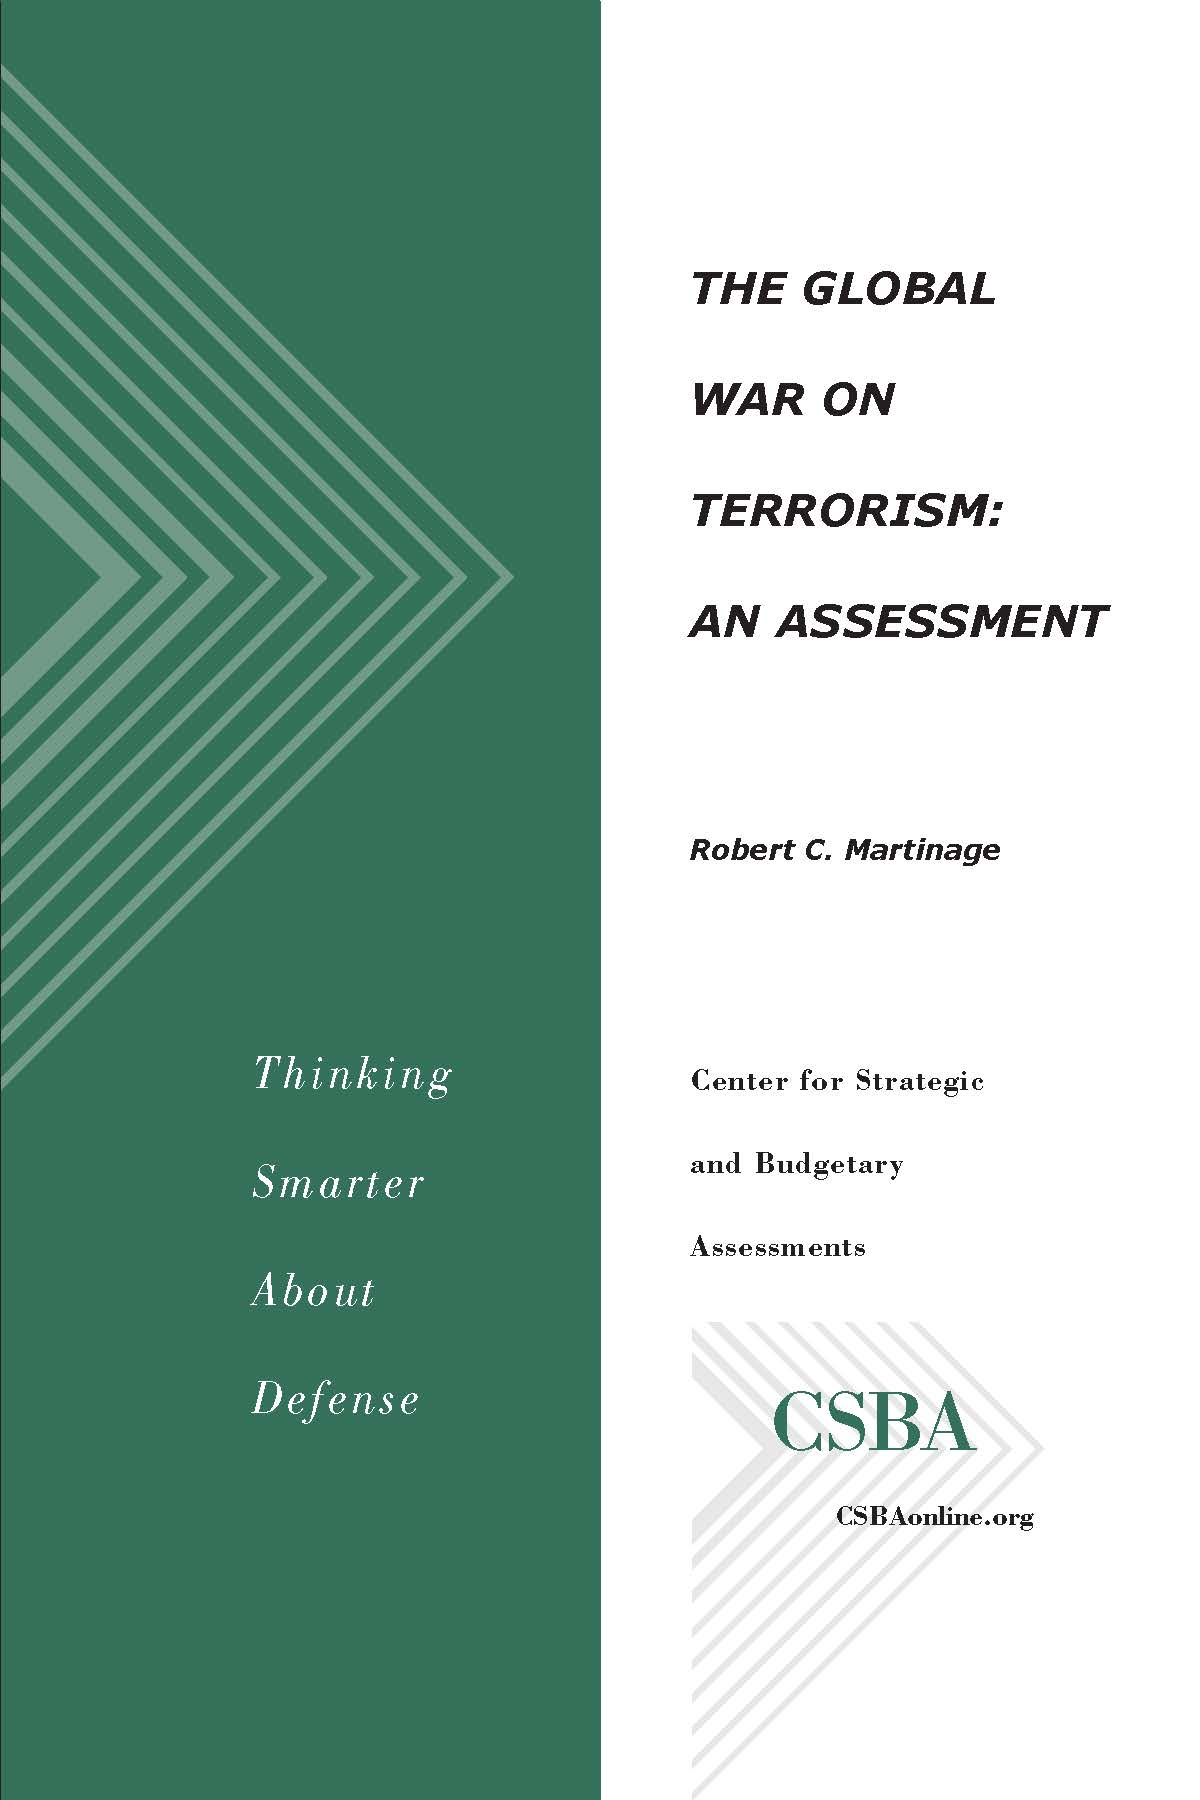 2008.02.23-The-Global-War-on-Terrorism[1]_Page_001